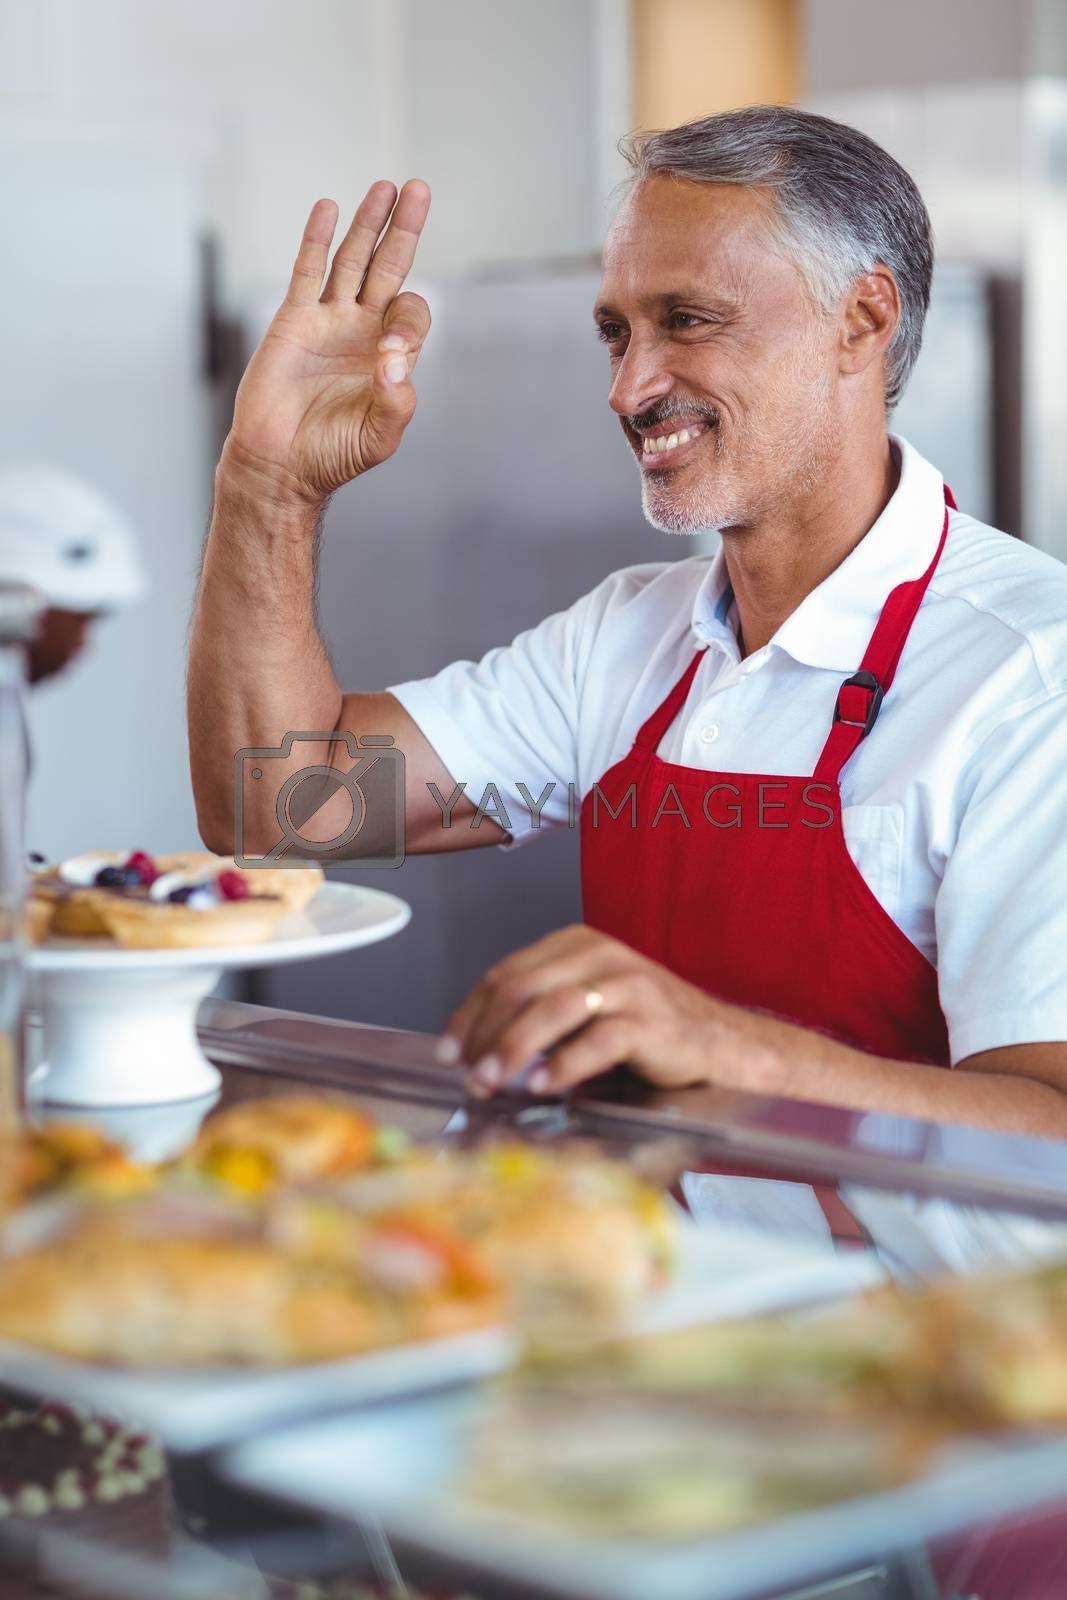 Royalty free image of Happy barista gesturing ok sign behind counter by Wavebreakmedia